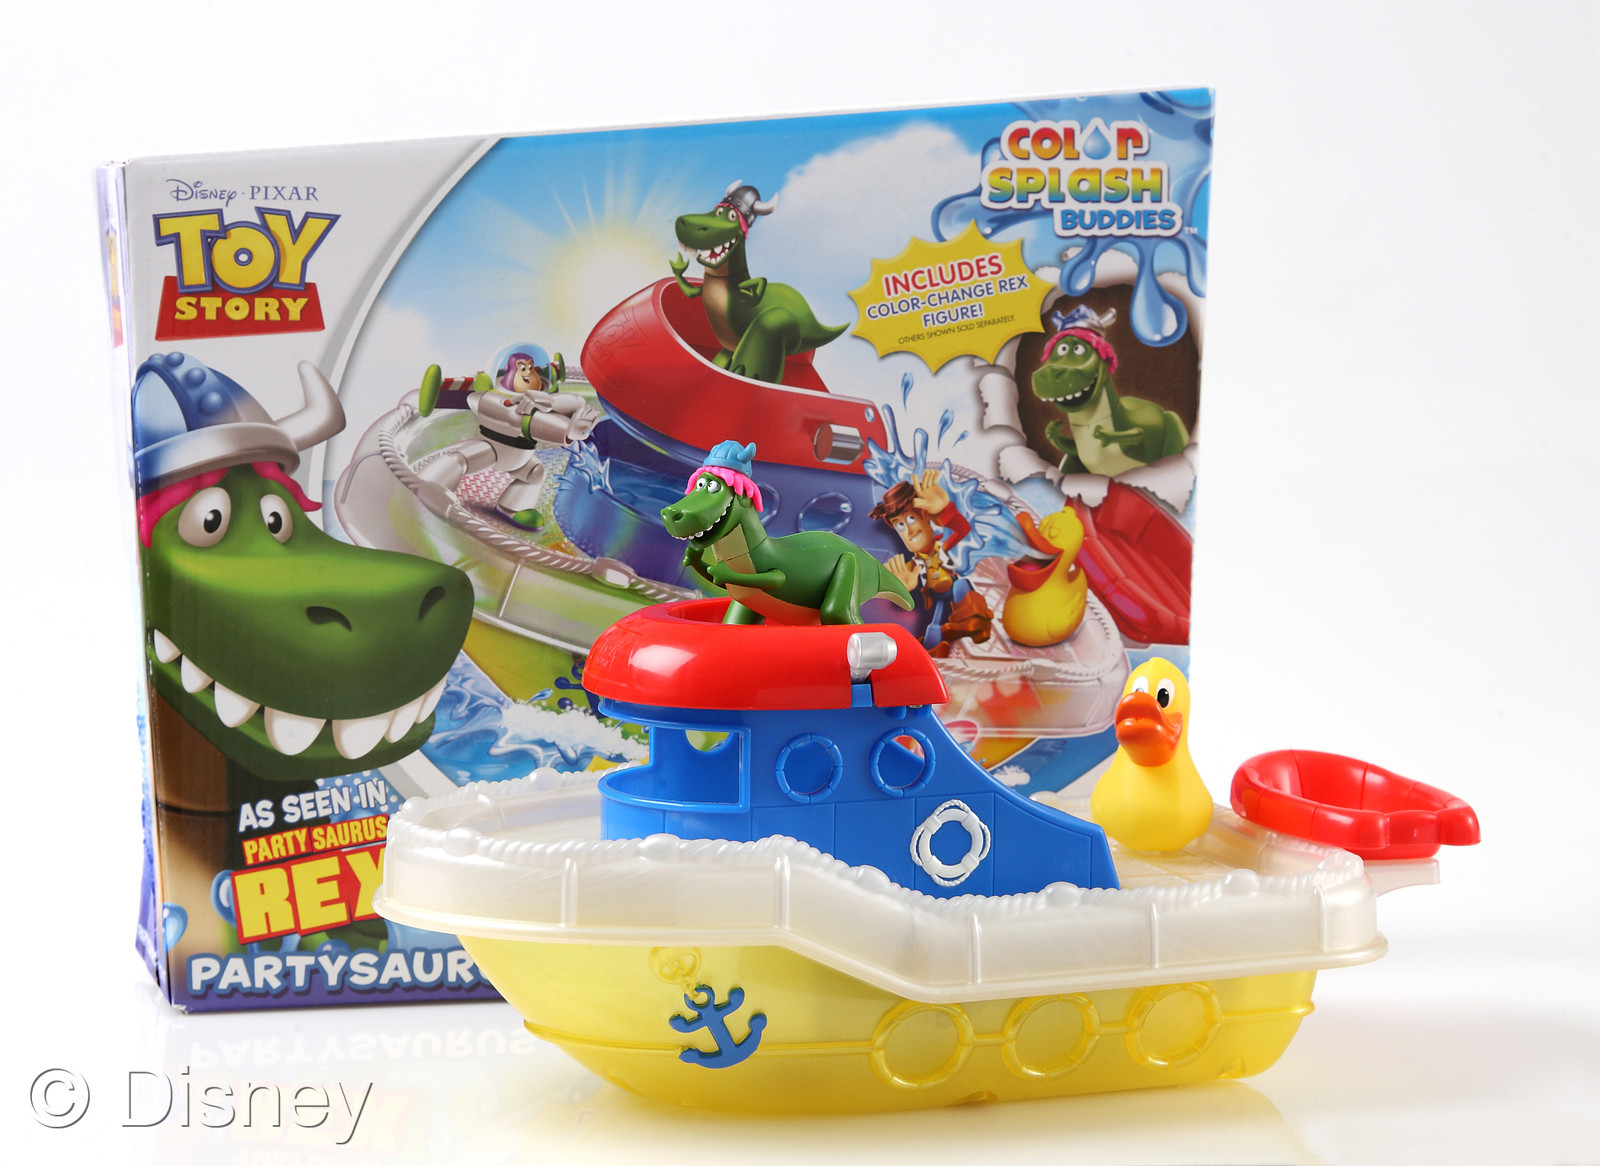 form of a bath set  To throw some more evidence onto that rumor  the  packaging states  As Seen In Partysaurus Rex   The splash boat and splash  buddies. Disney Holiday Gift Preview 2012  Pixar Merchandise